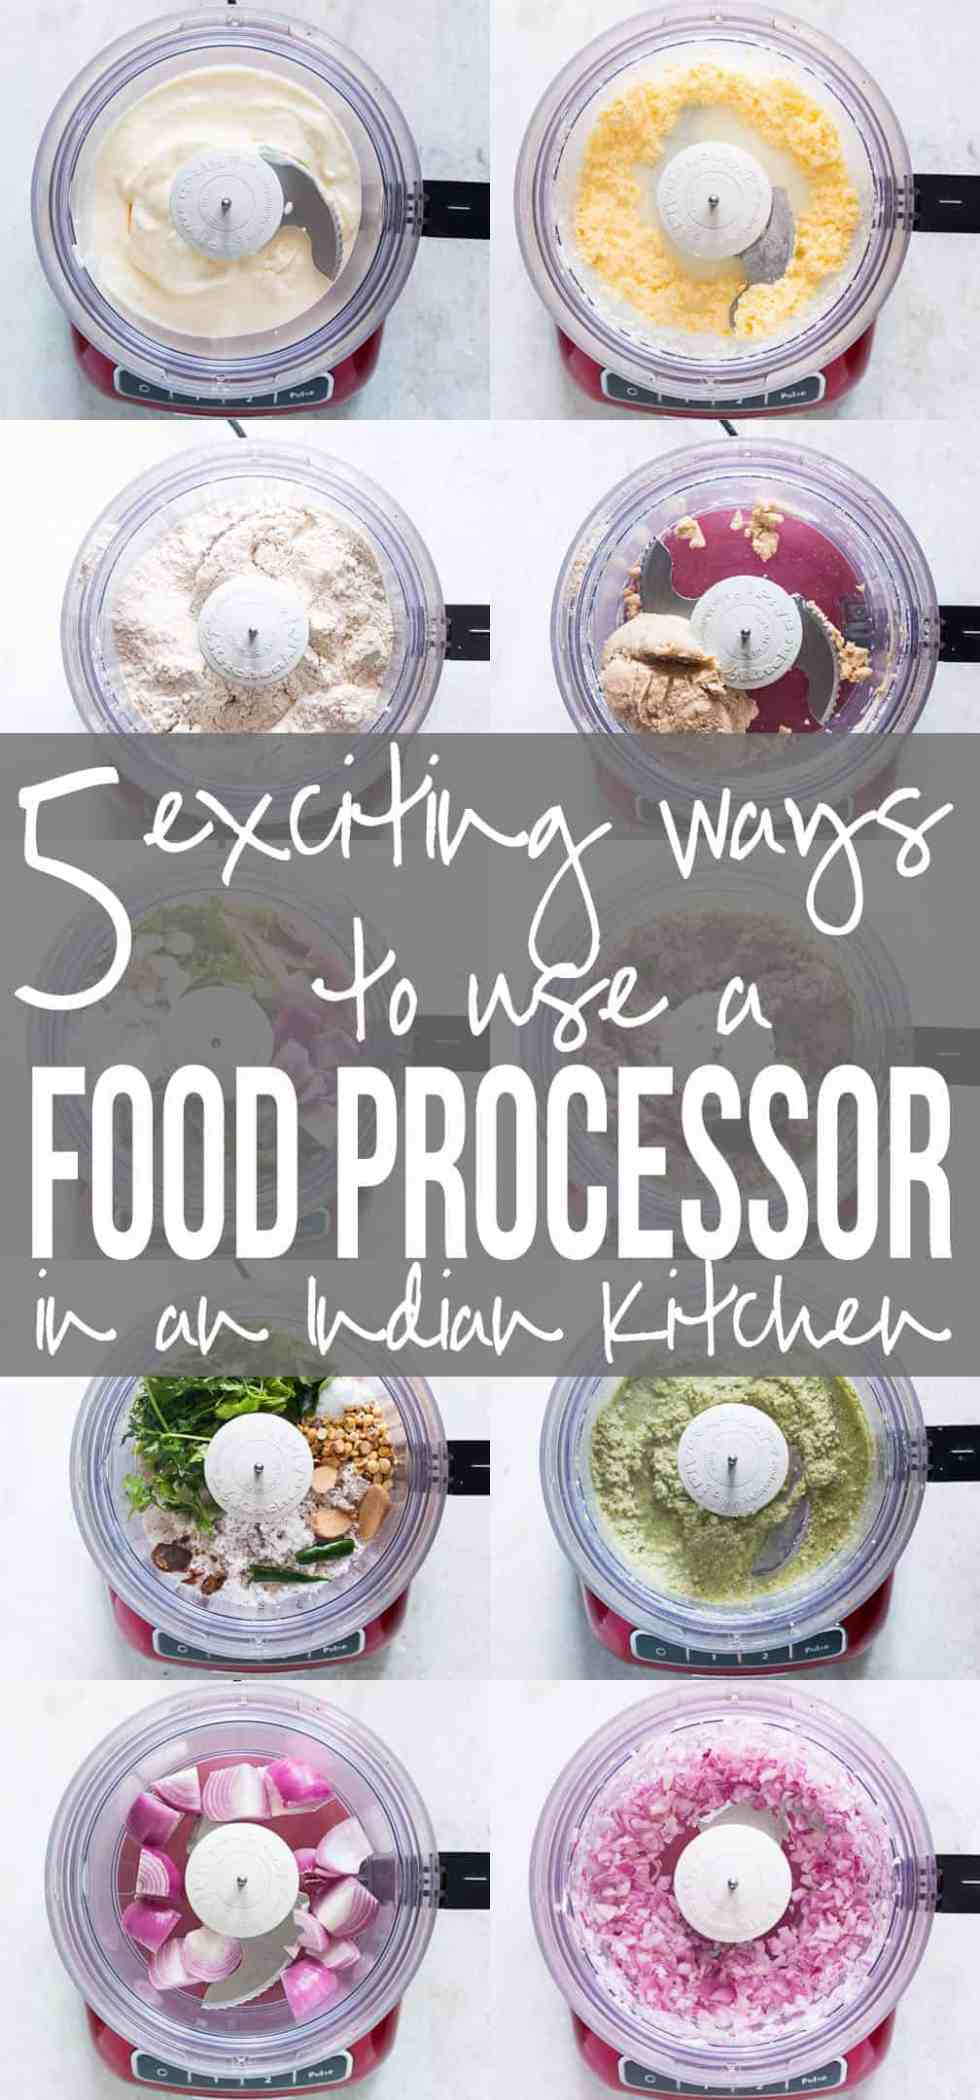 Looking to buy a food processor? Read my recommendations and find out 5 exciting ways to use a food processor in an Indian kitchen (mincing meat, churning butter, kneading atta dough, chopping, shredding etc)